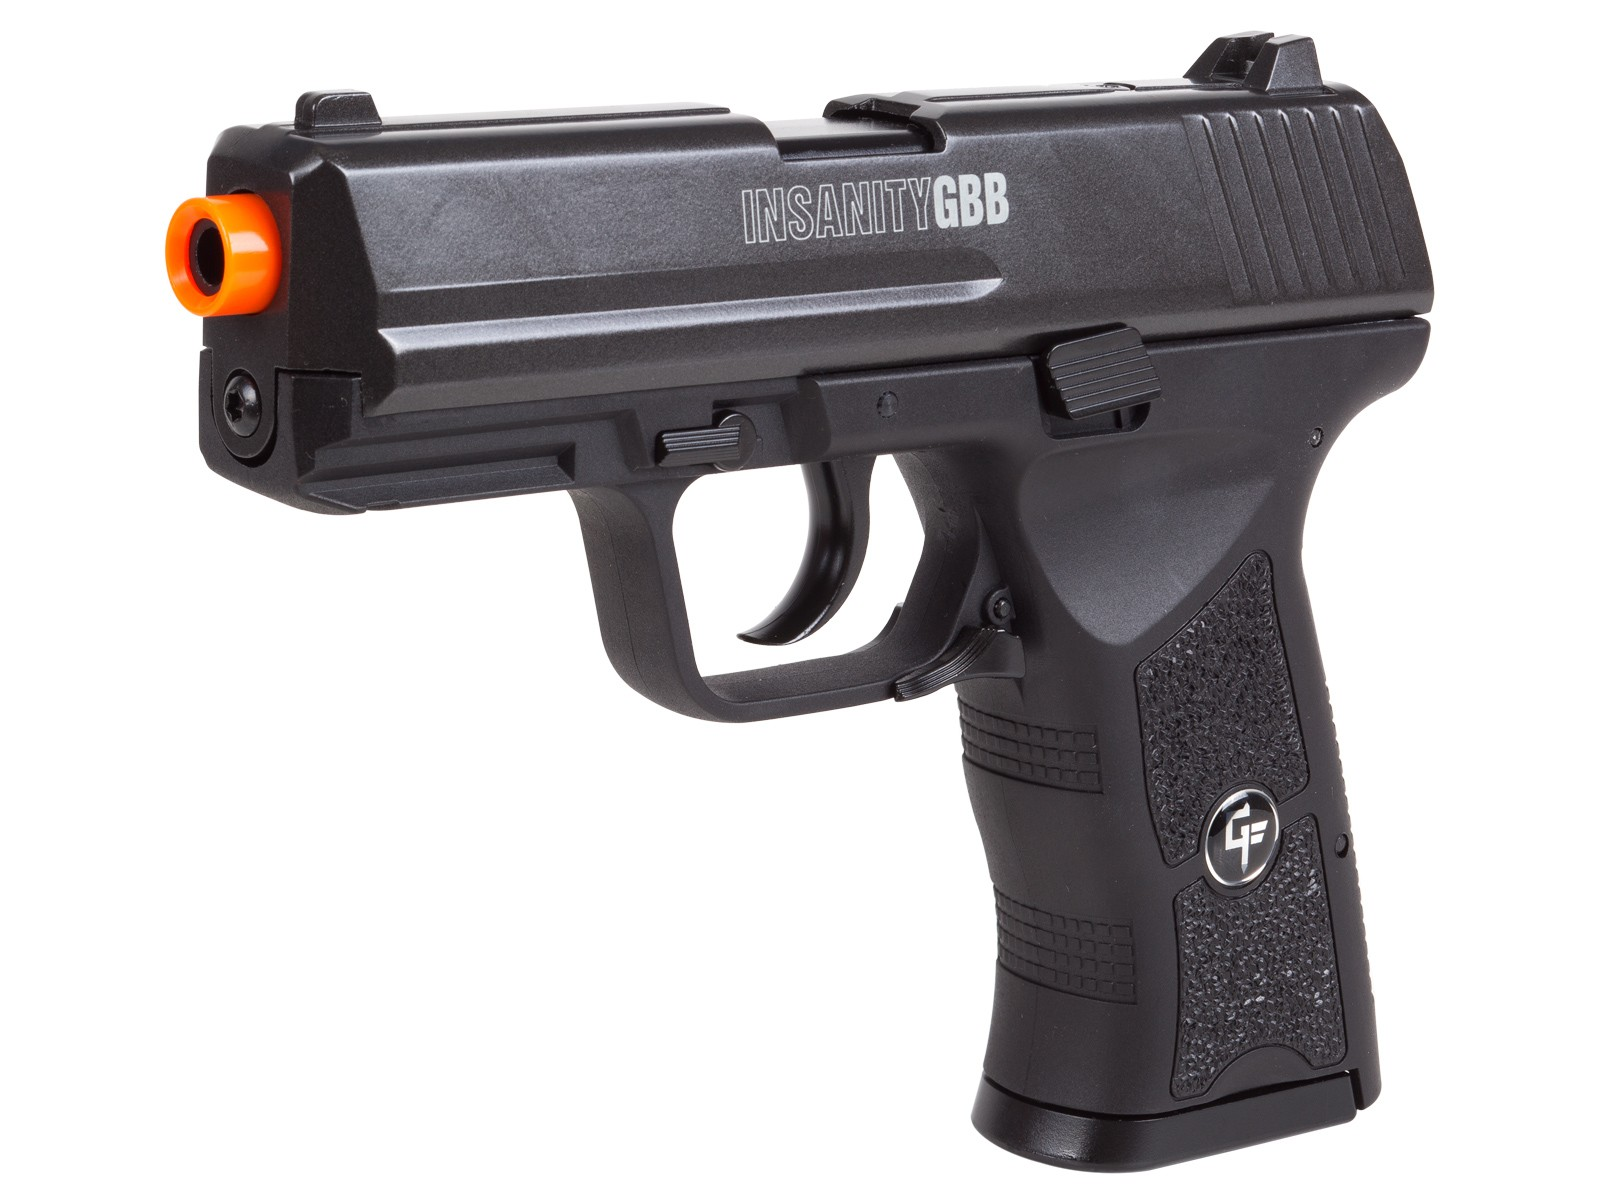 Cheap GameFace Insanity GBB CO2 Airsoft Pistol 6mm